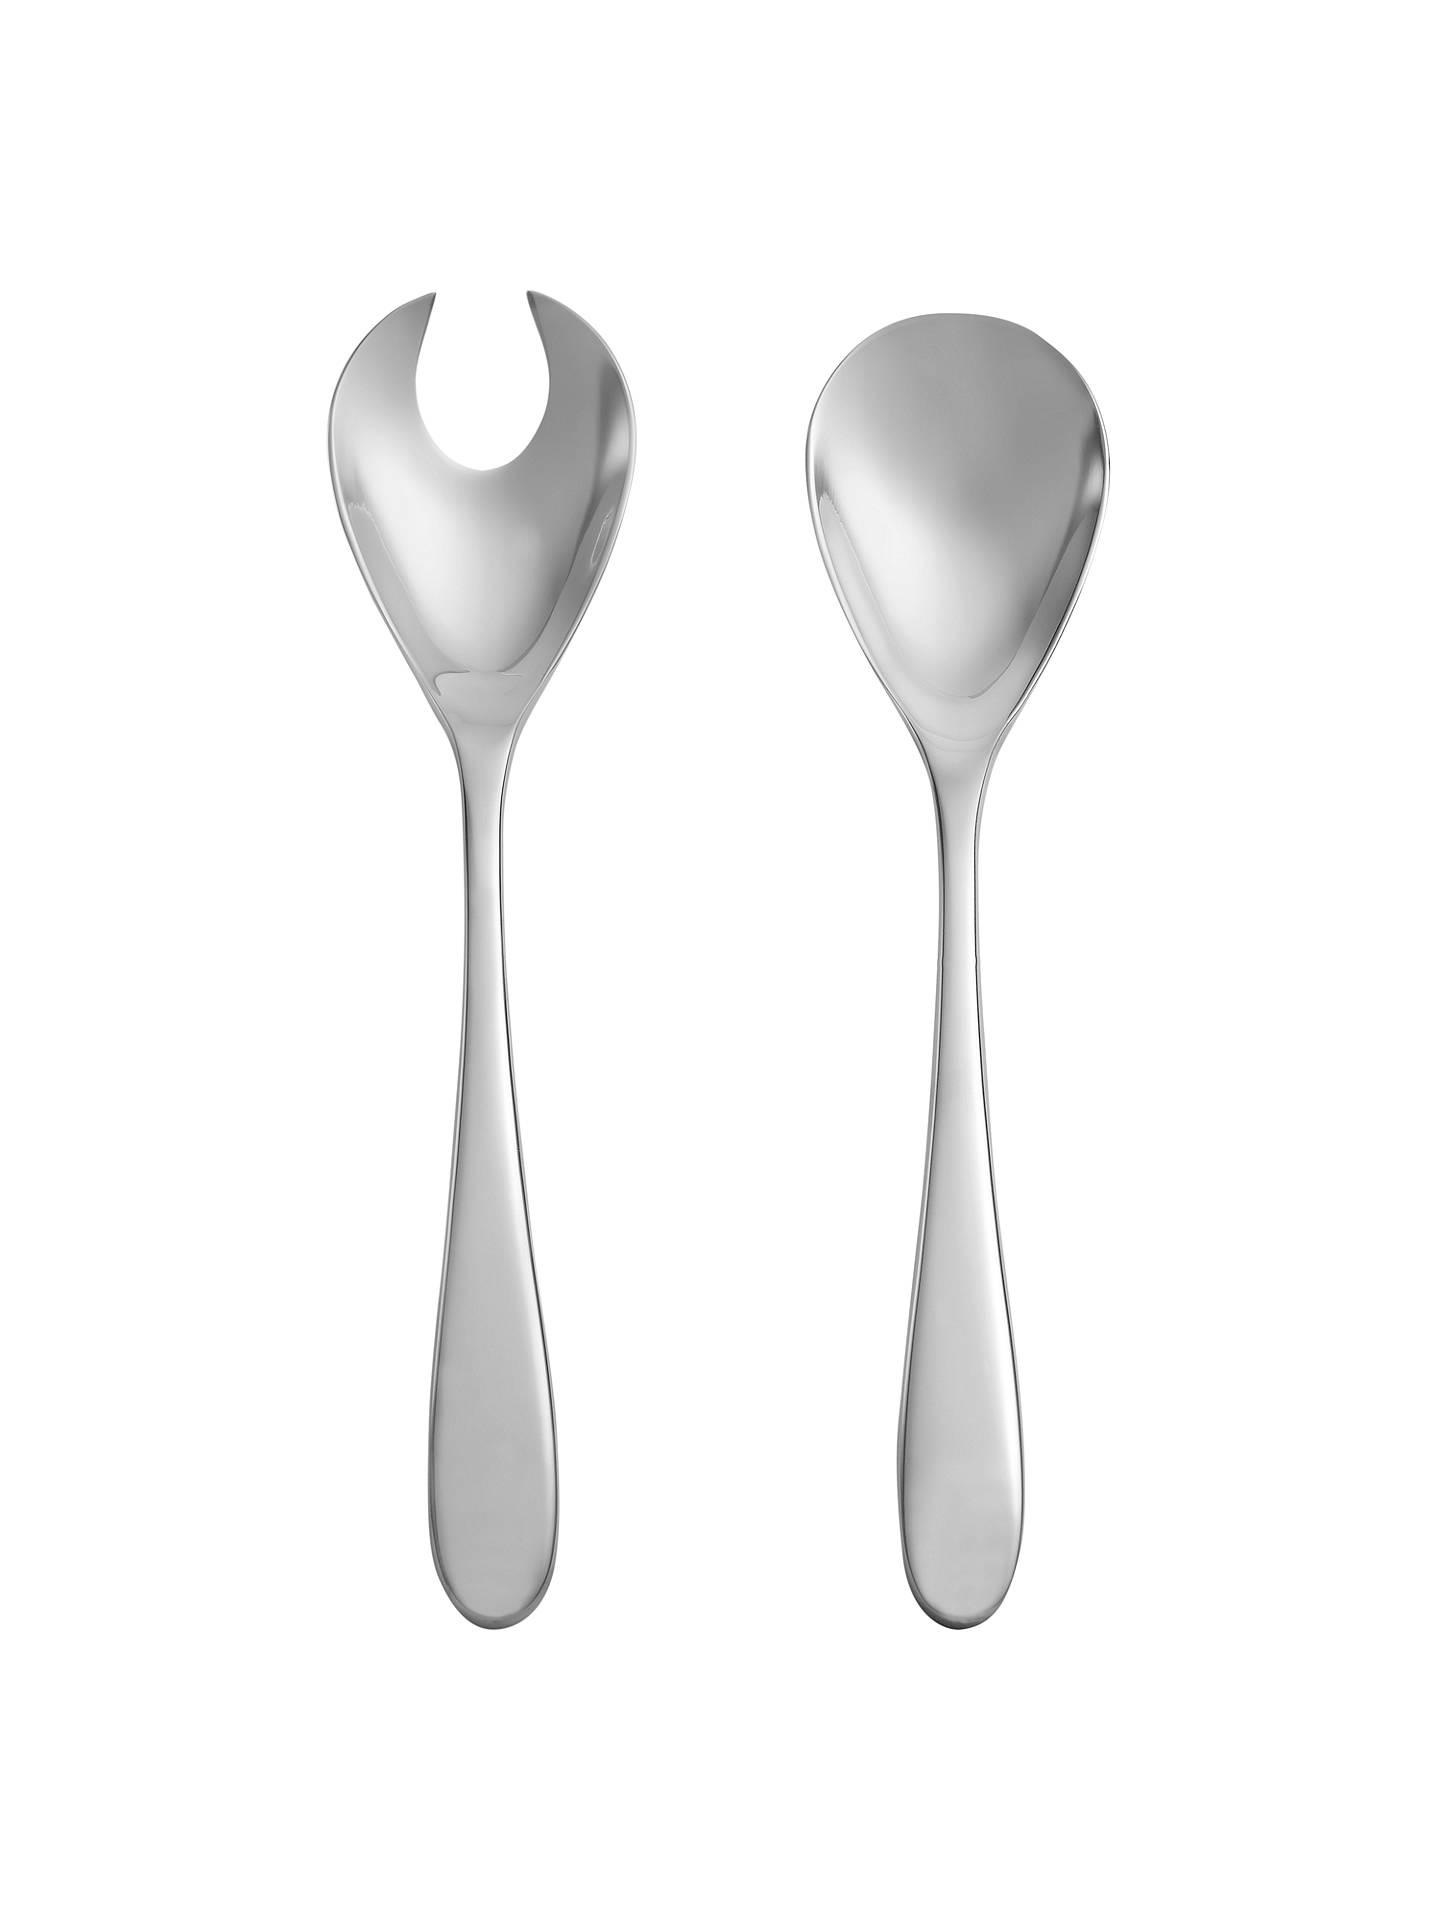 Buy John Lewis & Partners Outline Salad Servers, Stainless Steel Online at johnlewis.com